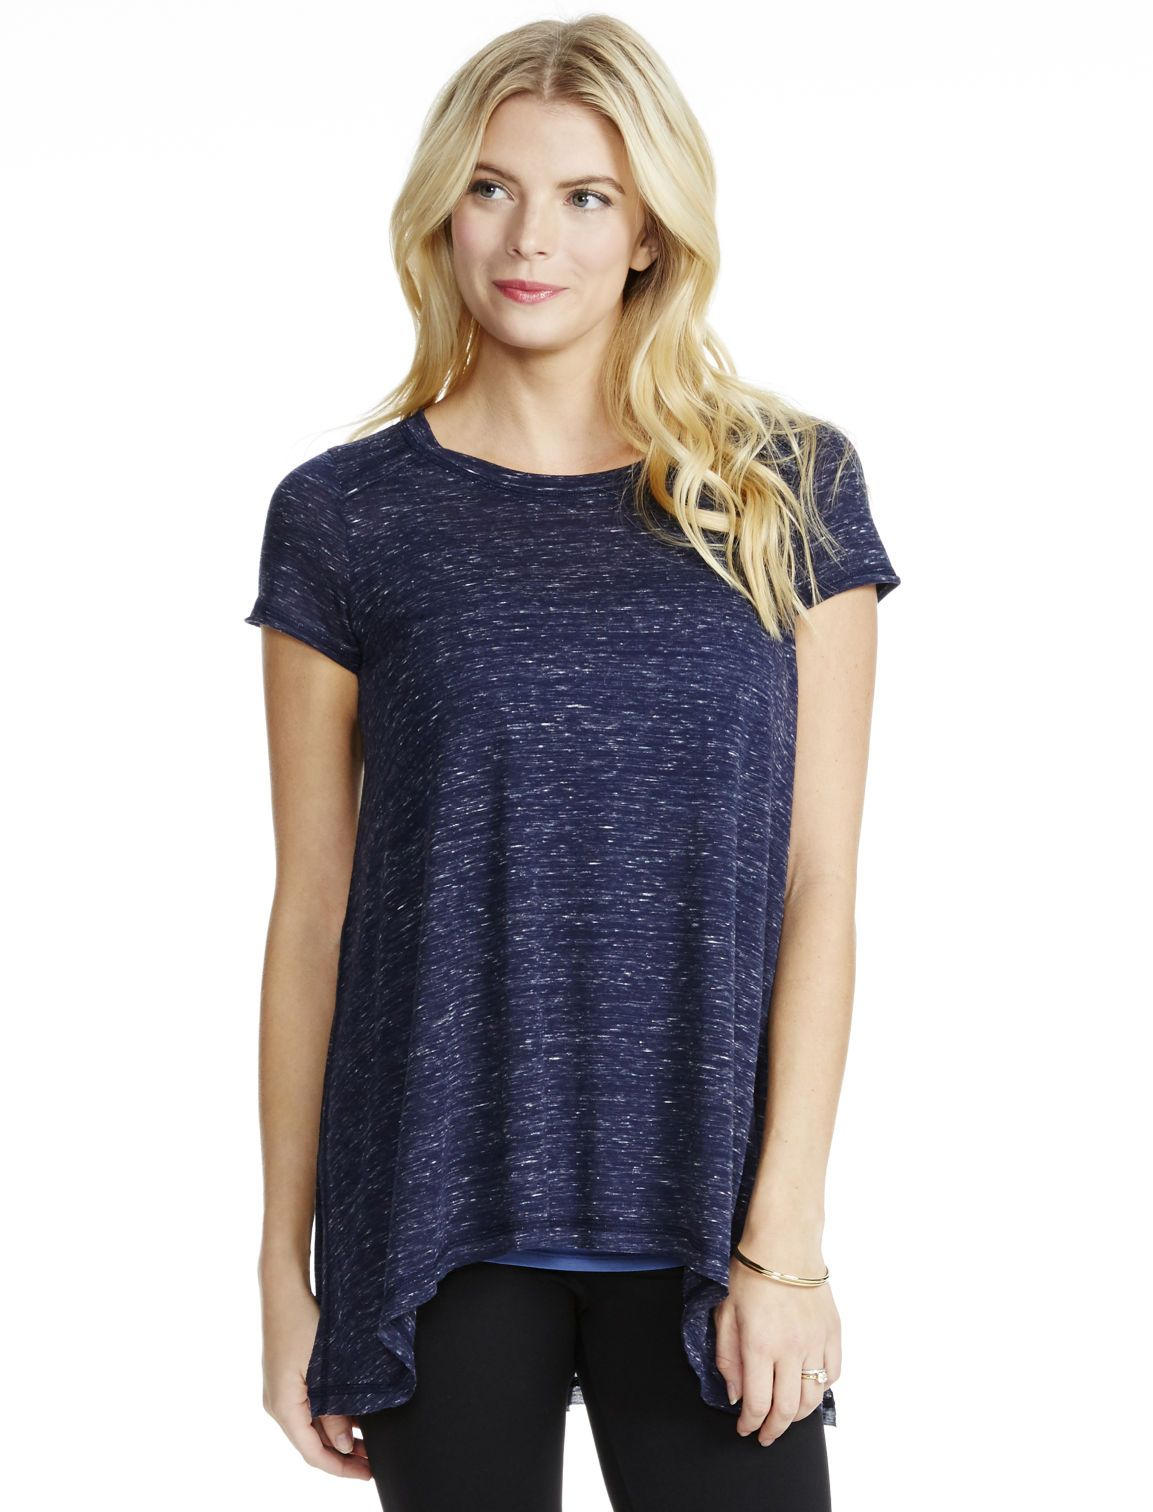 7b9c0a83efd The best nursing top you'll own | Short sleeve side access super soft nursing  top by Jessica Simpson available at Motherhood Maternity